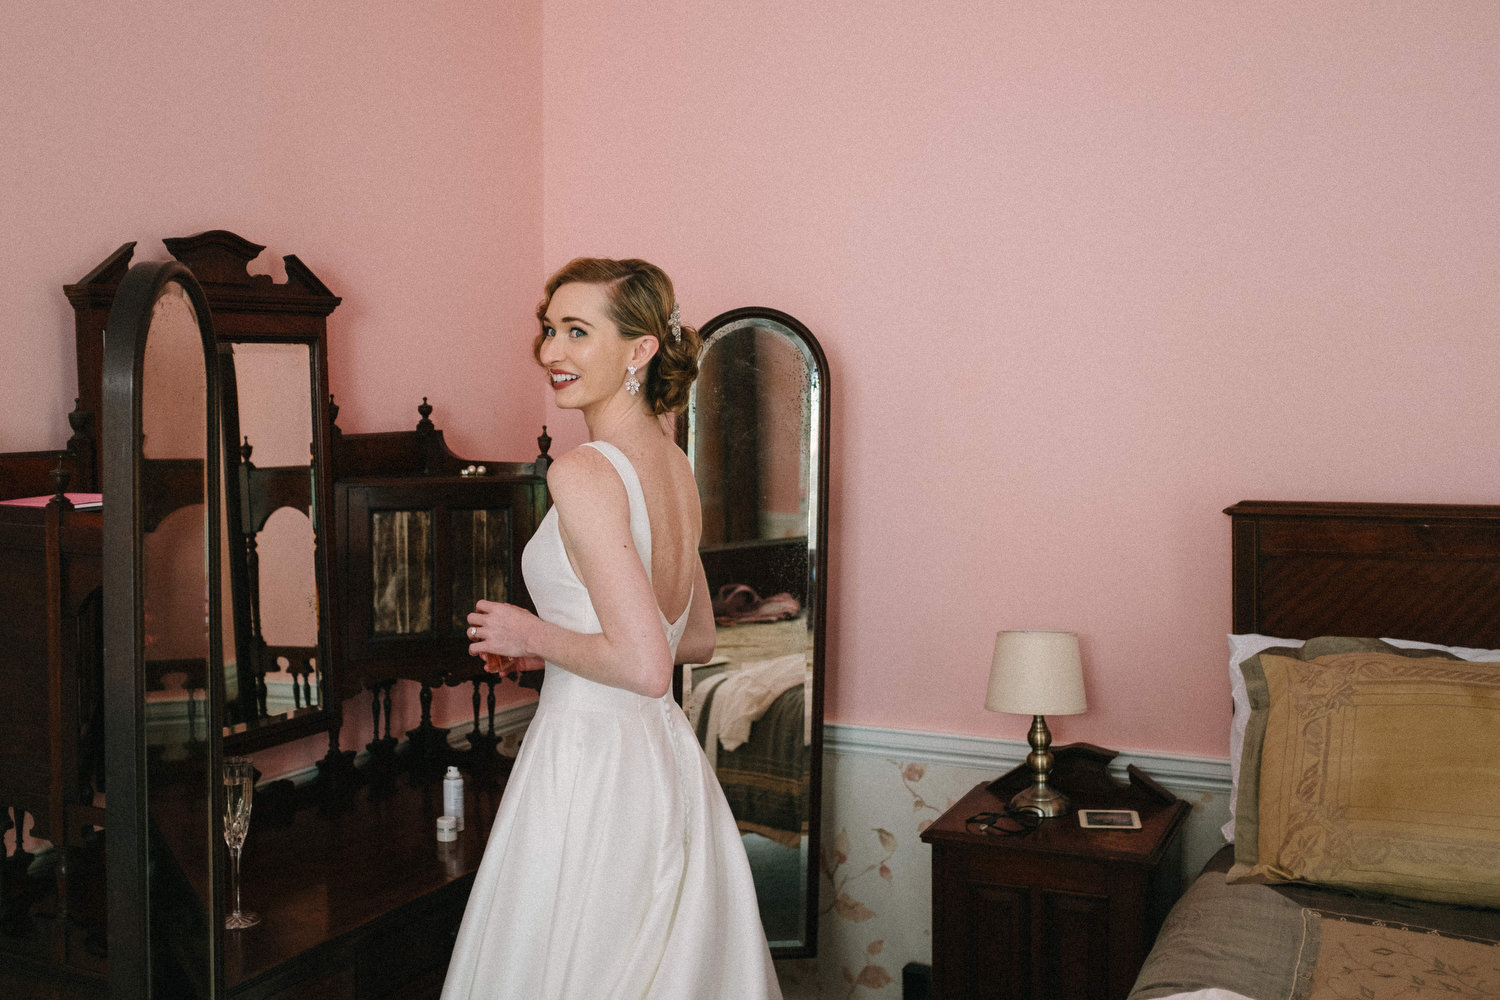 000000000000000000000091_bride_style_preparation_vintage_Hair_dress_photography_david_mcclelland_ireland_makeup_castle_hollywood_kinnity_wedding_photographer_fujifilm